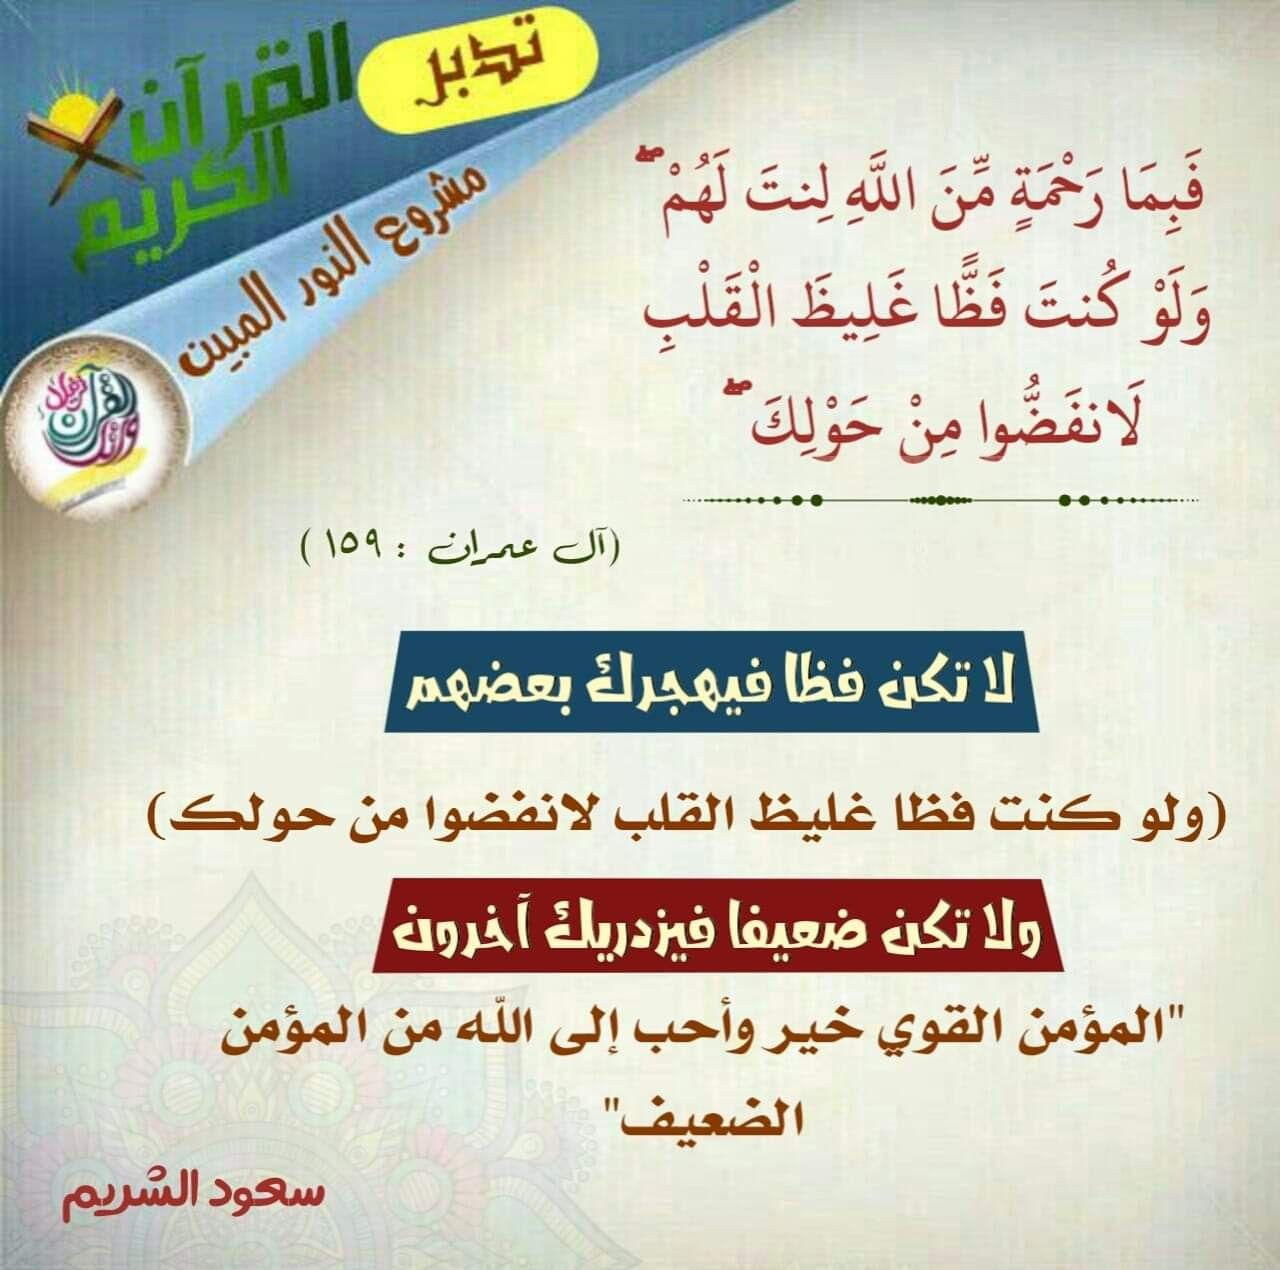 Pin By Iman Yousef On آل عمران Social Security Card Personalized Items Social Security